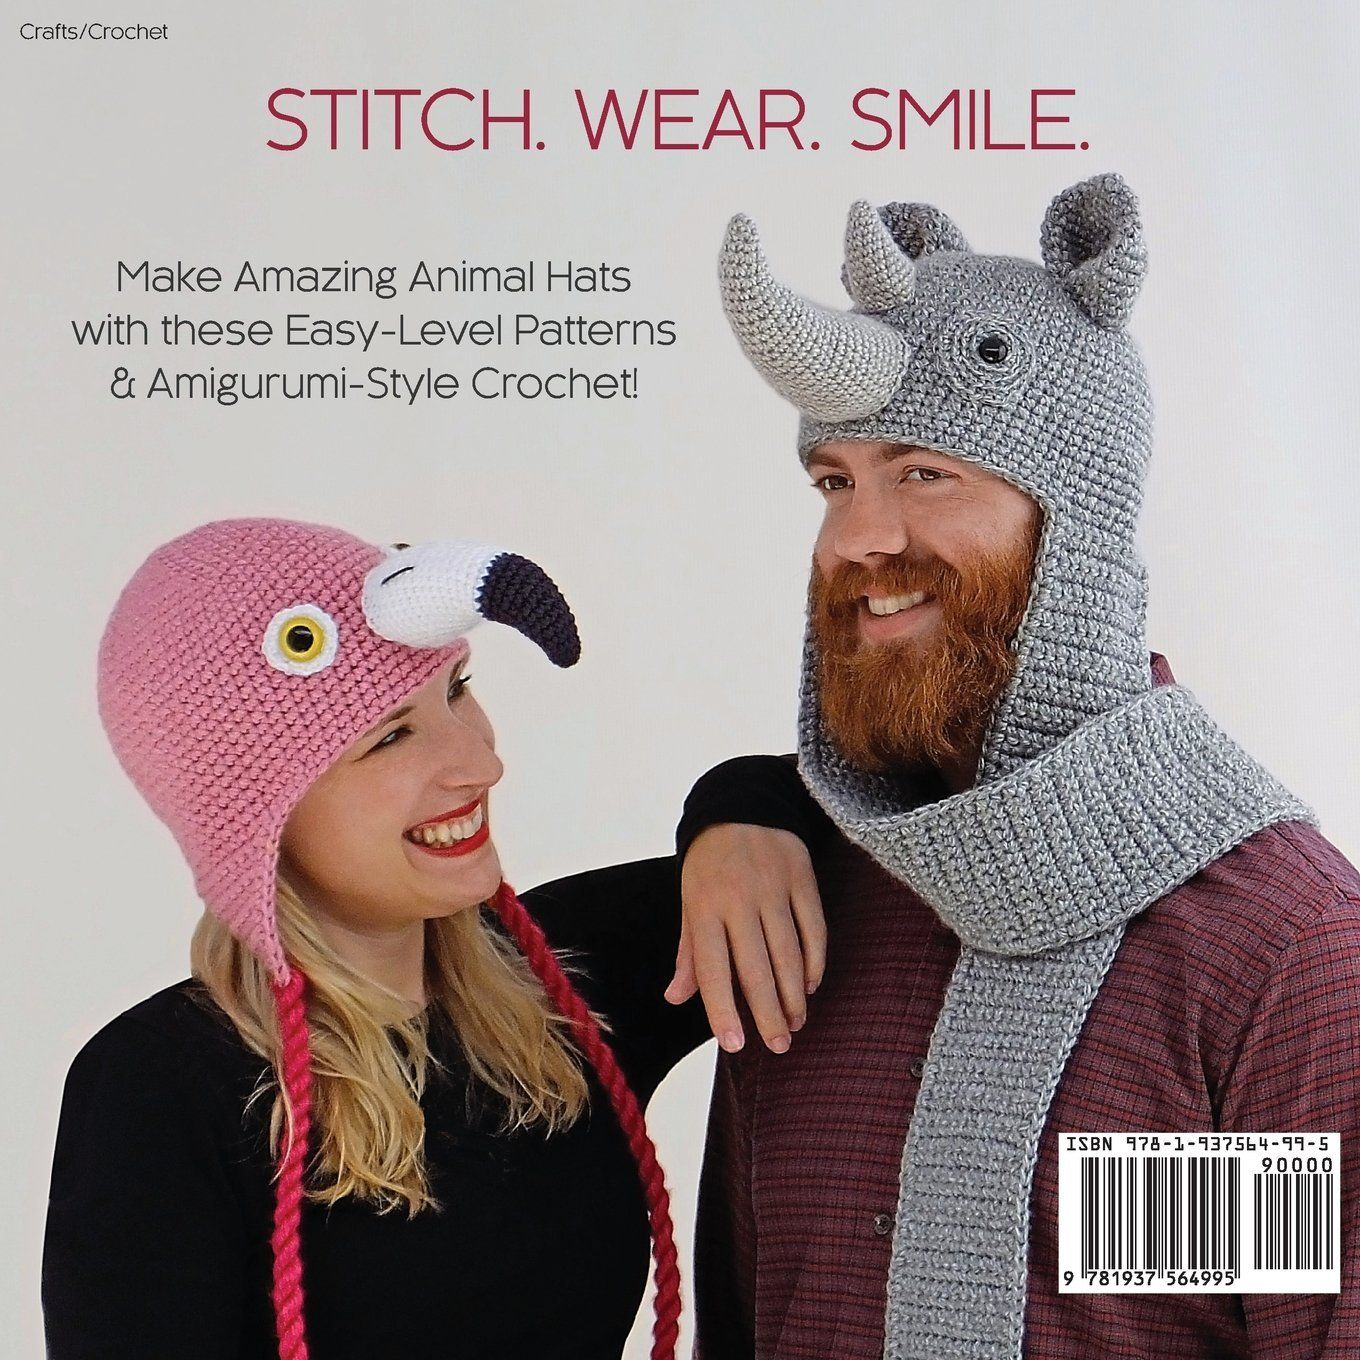 1b9b11de334 Amigurumi Animal Hats Growing Up  20 Crocheted Animal Hat Patterns for Ages  6-Adult